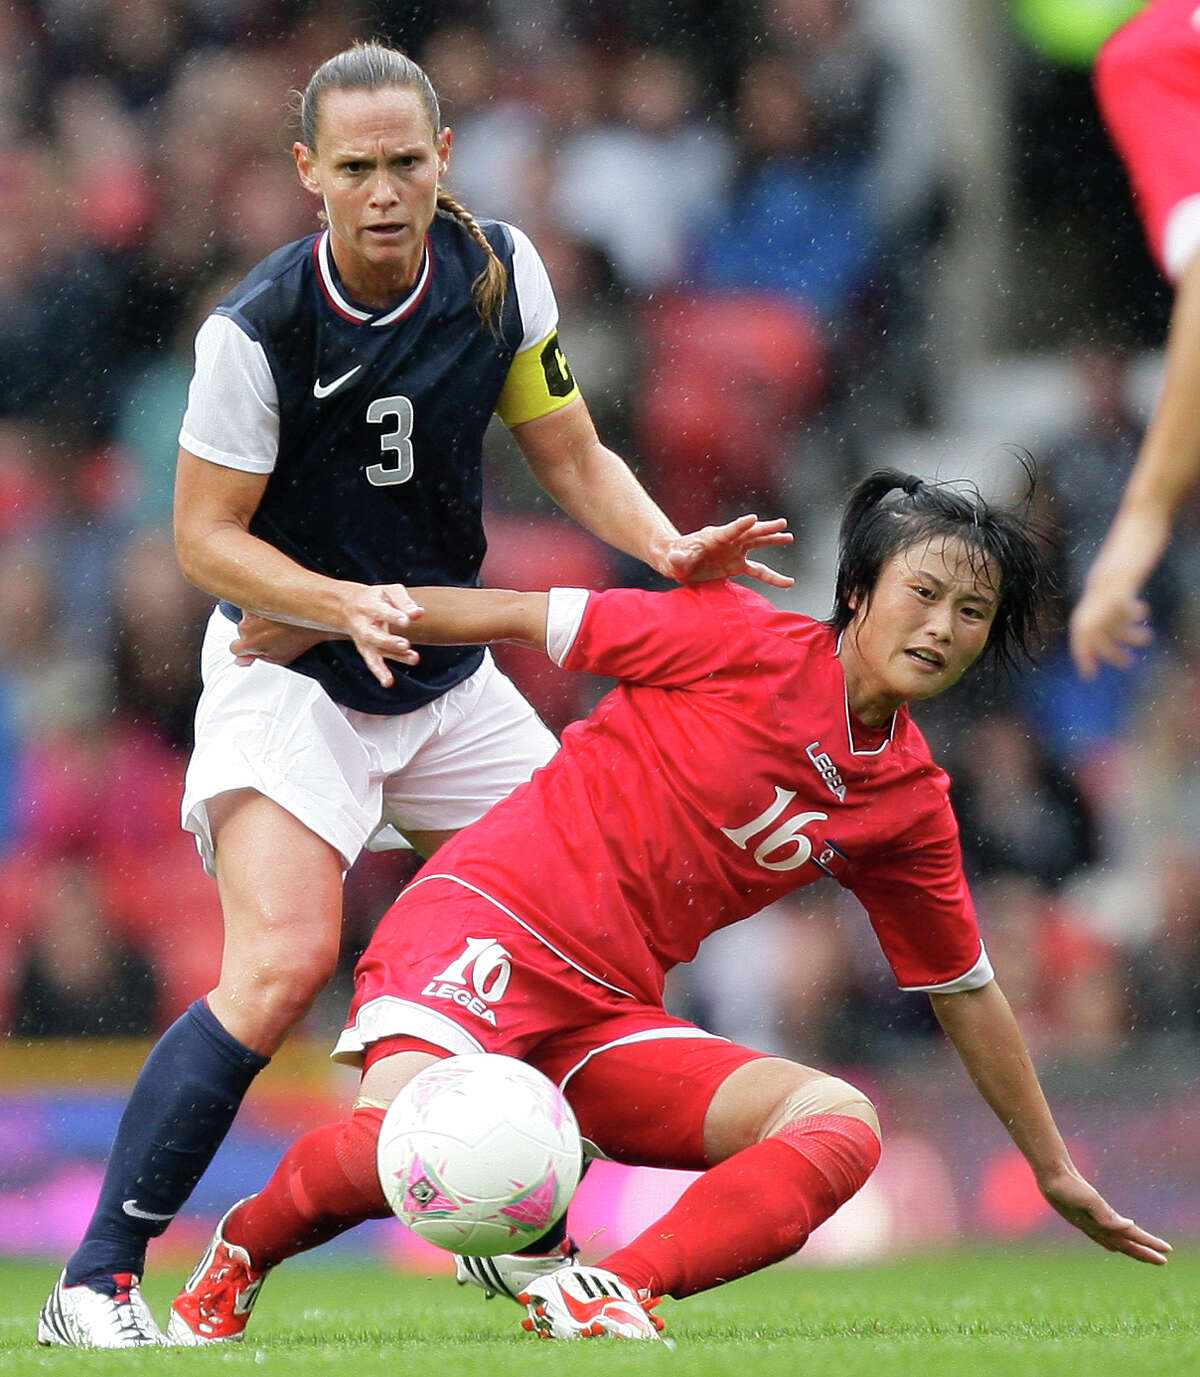 North Korea's Kim Song Hui, center, fights for the ball against the United States' Christie Rampone during their group G women's soccer match at the London 2012 Summer Olympics, Tuesday, July 31, 2012, at Old Trafford Stadium in Manchester, England.